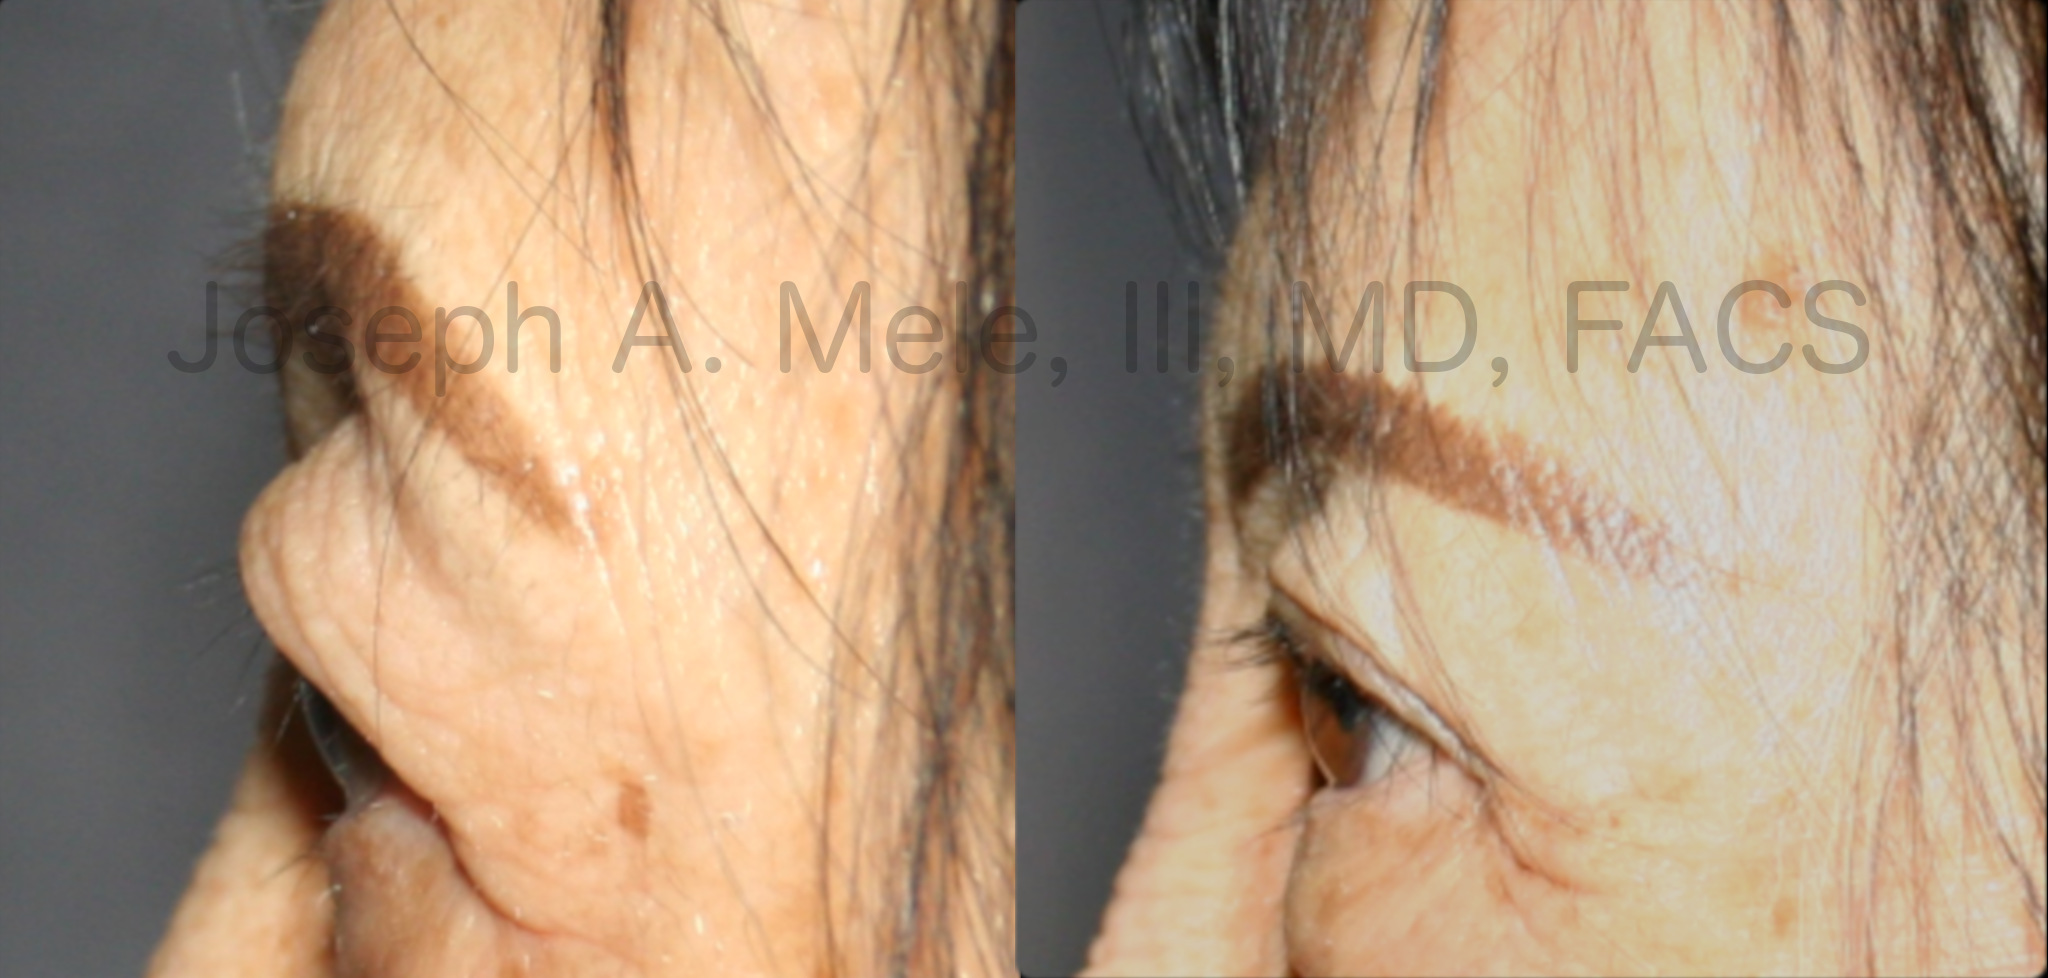 Upper blepharoplasty before and after photos - cosmetic eyelid lift of the upper eyelids